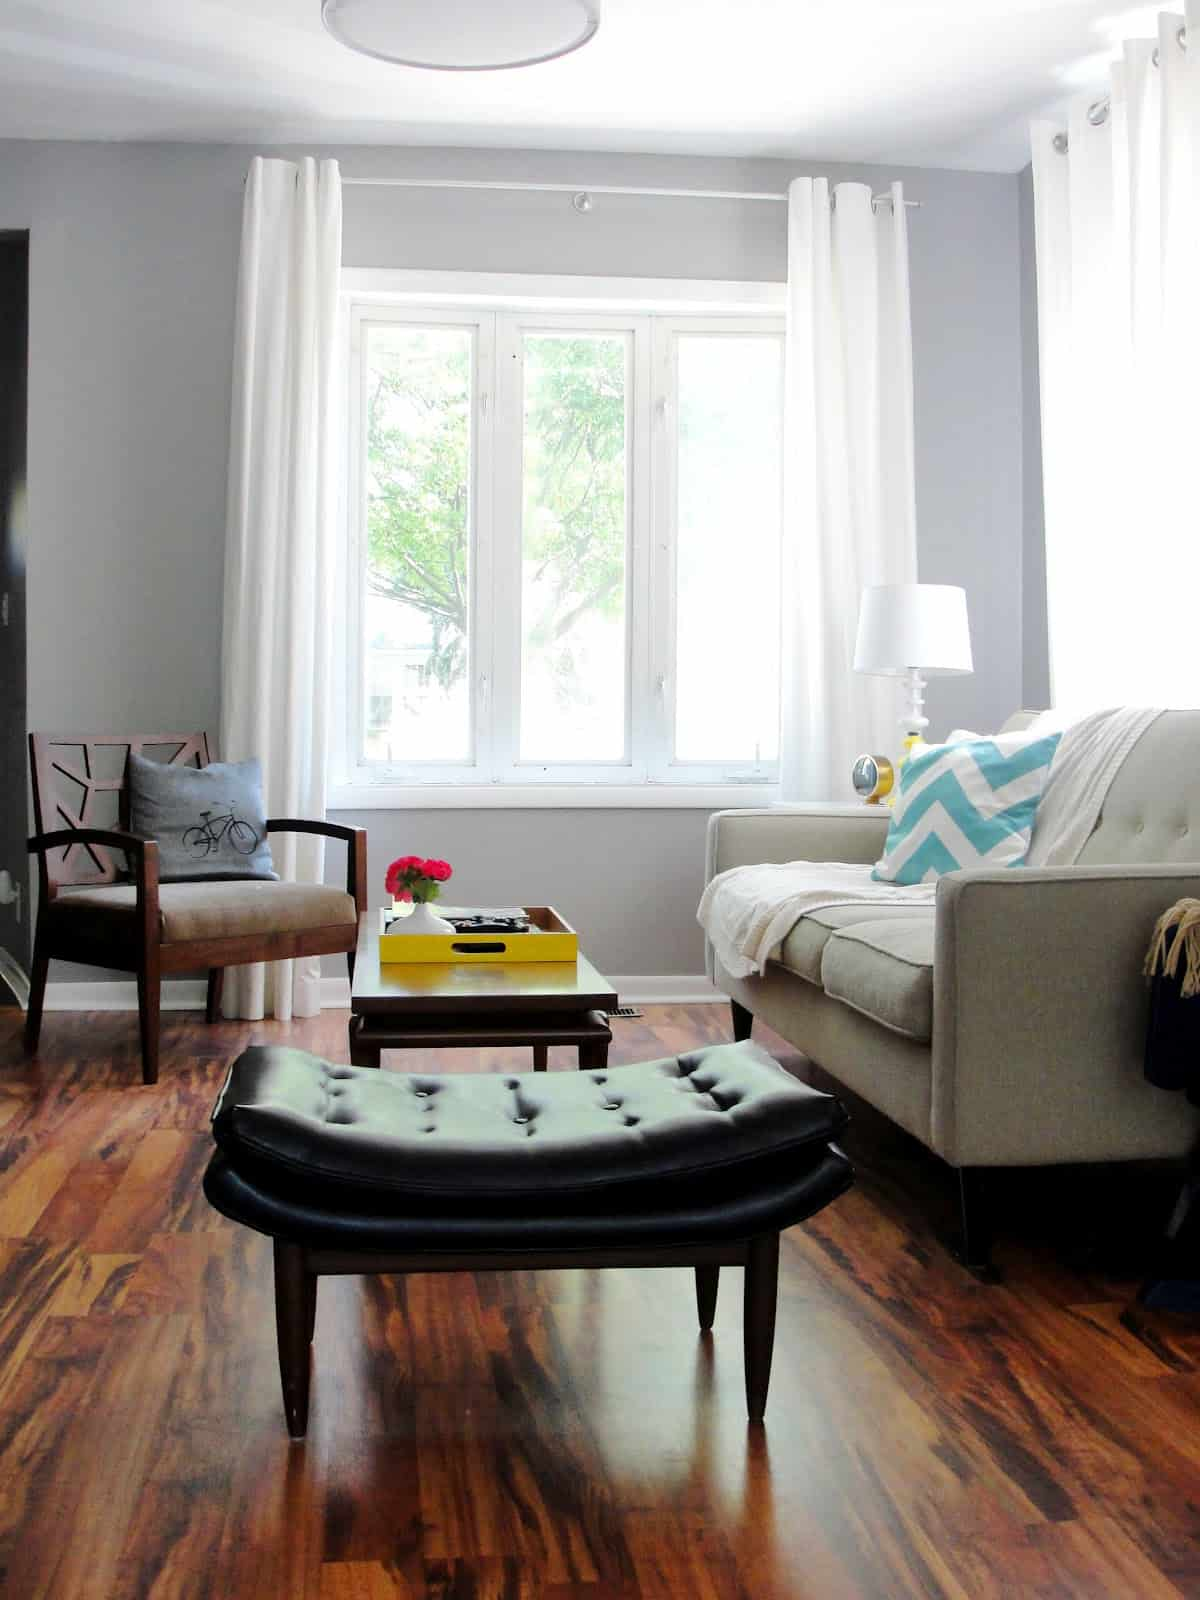 living room without a rug2 Decorating Mistakes That Make Your Home Feel Smaller